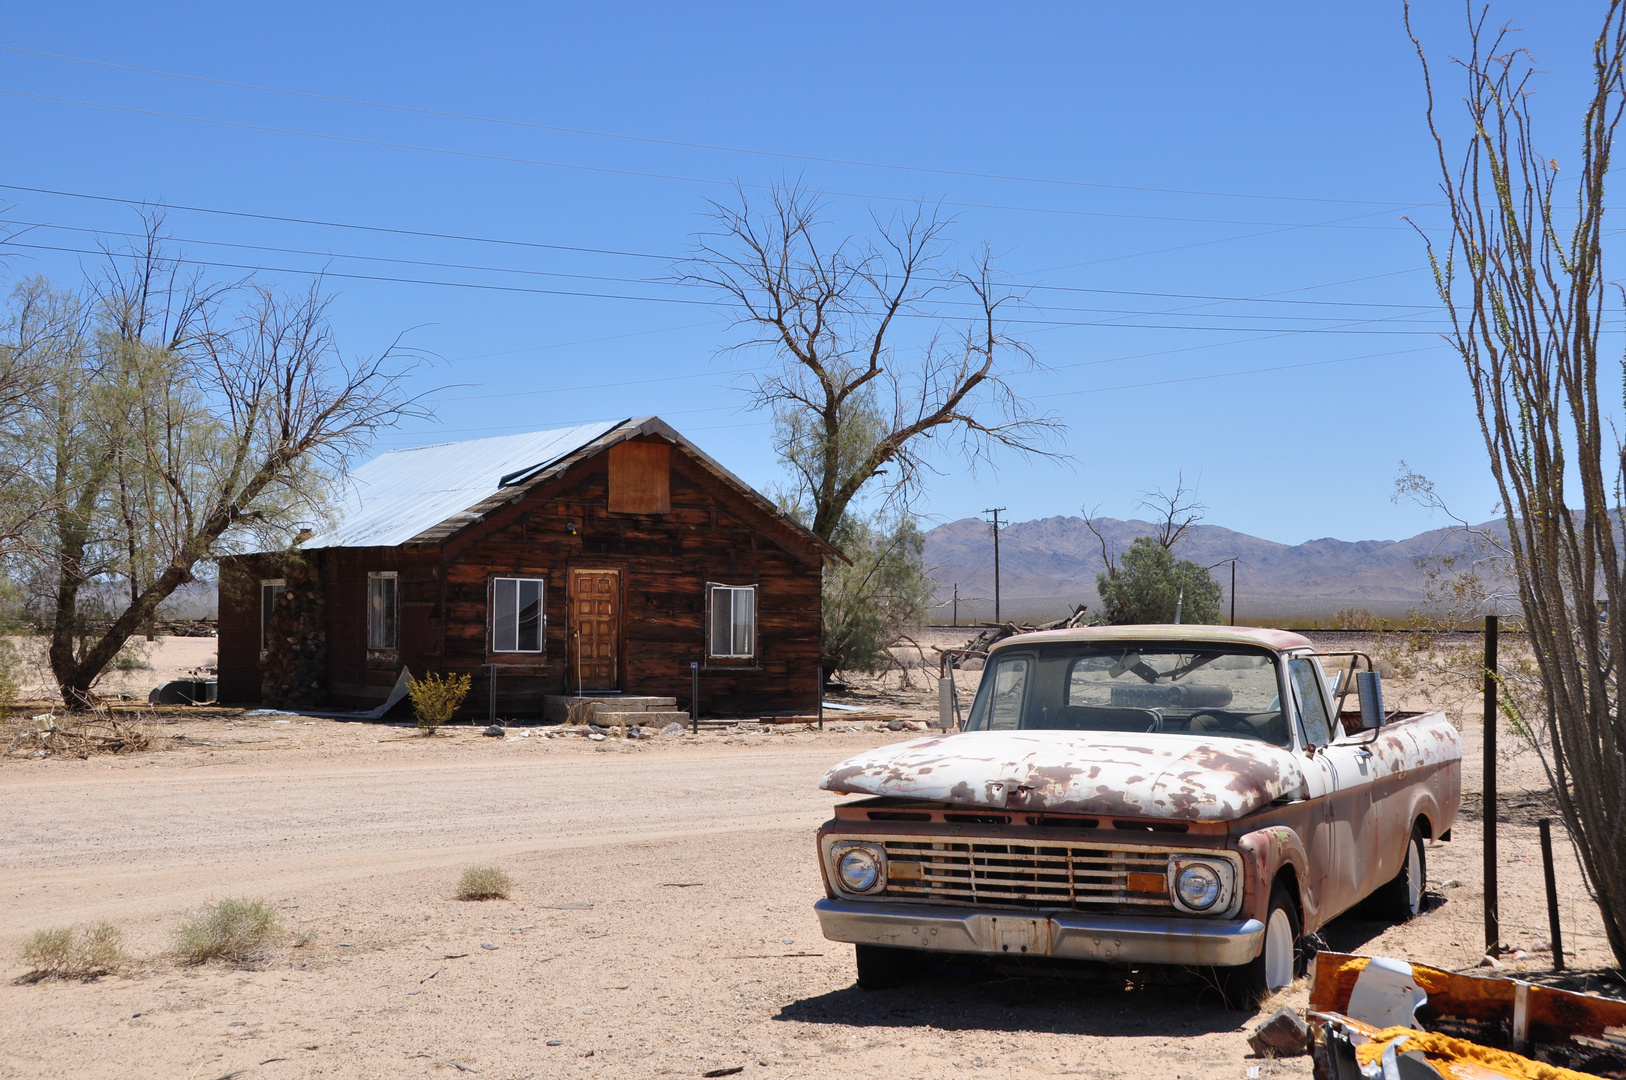 Somewhere along the Route 66